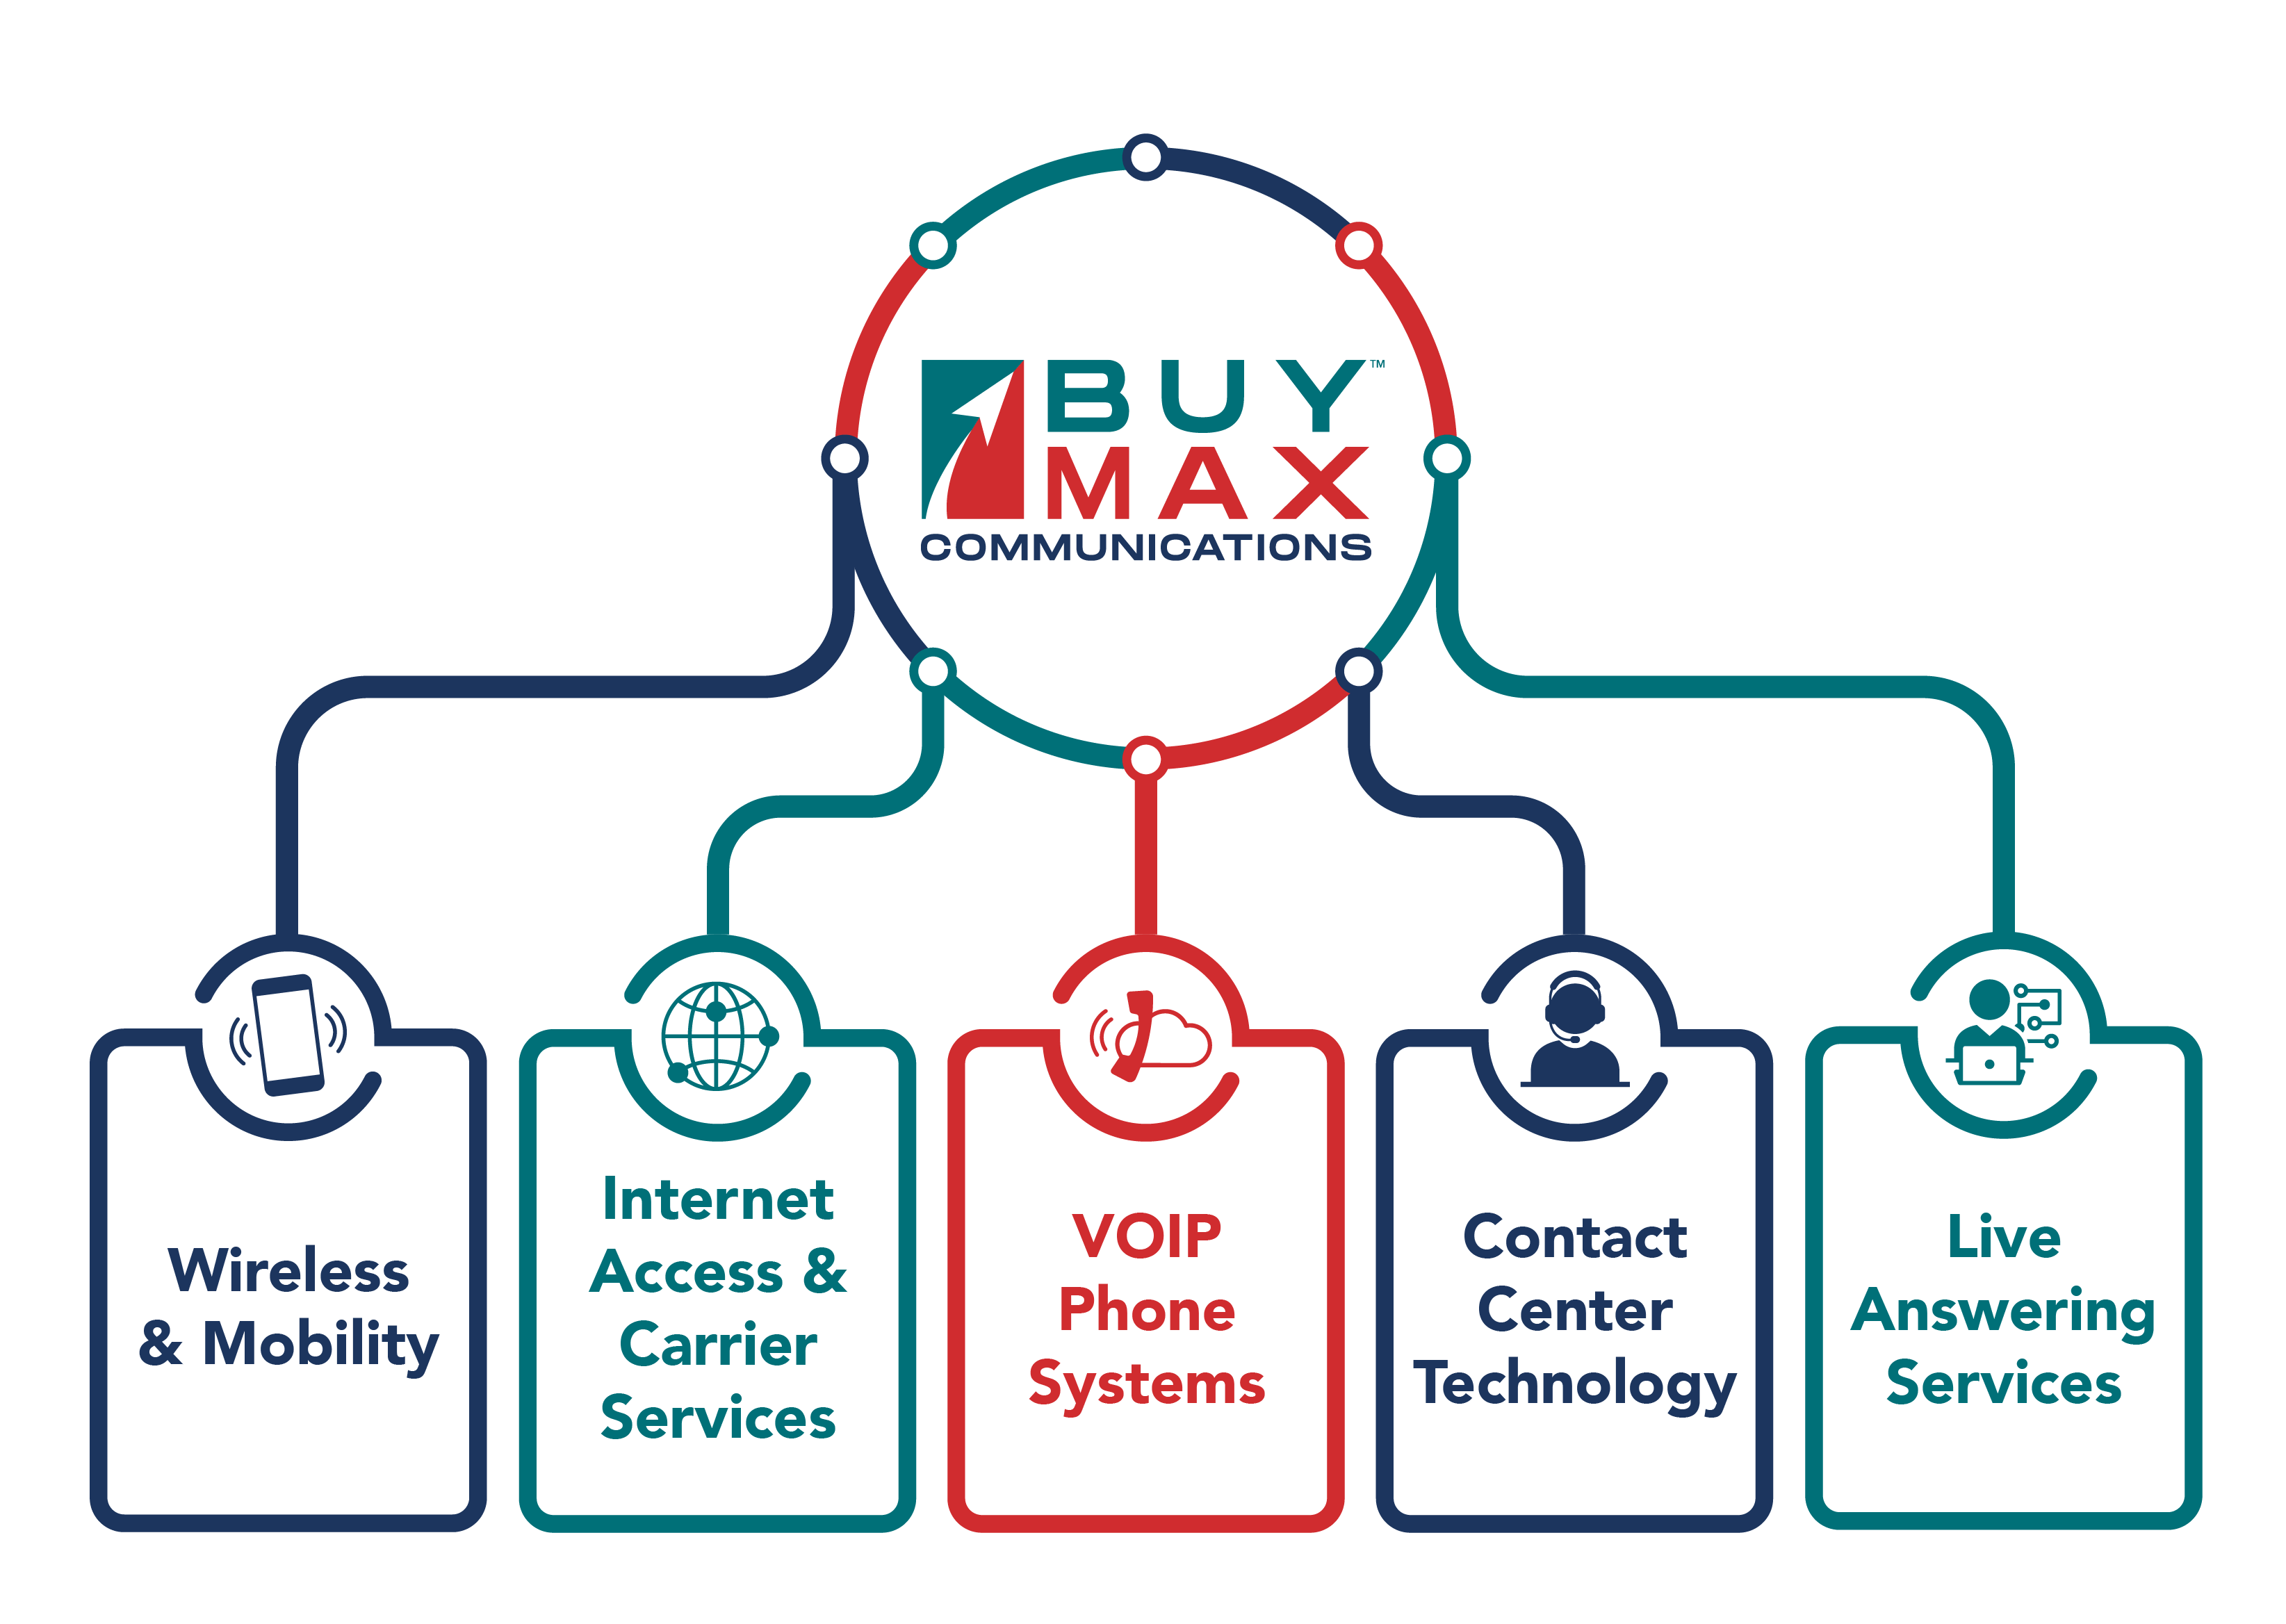 https://buymax.scorpionwebsite.com/~/buymax-products/buymax-communications/?_pm=Content